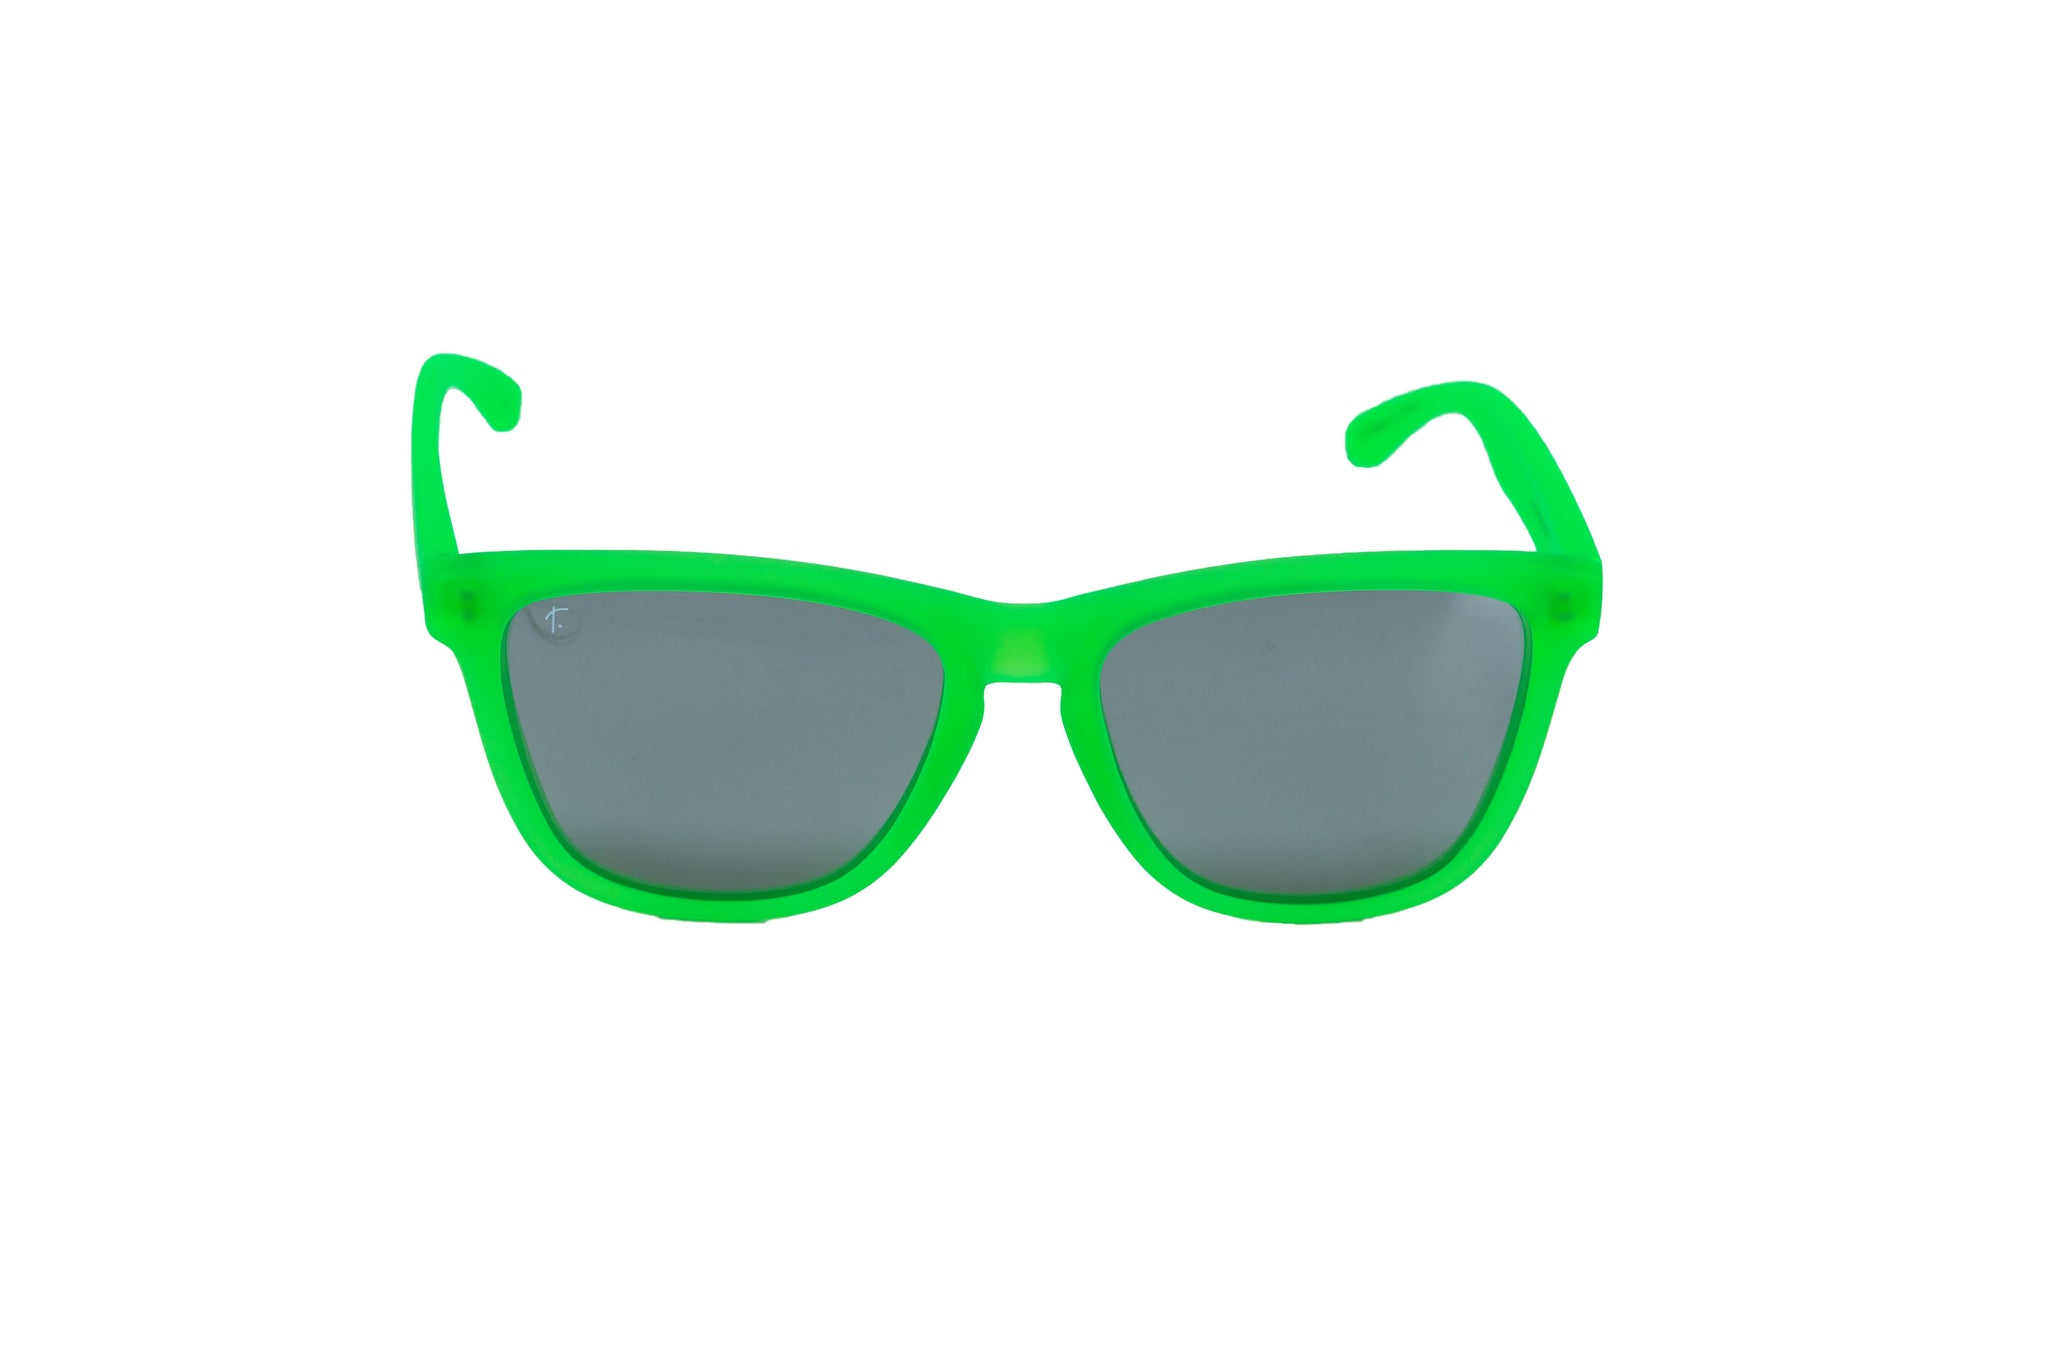 276ed2cfec8 ... womens running sunglasses. green  silver mirrored lens sunglasses. polarized  sunglasses. sunglasses for ...